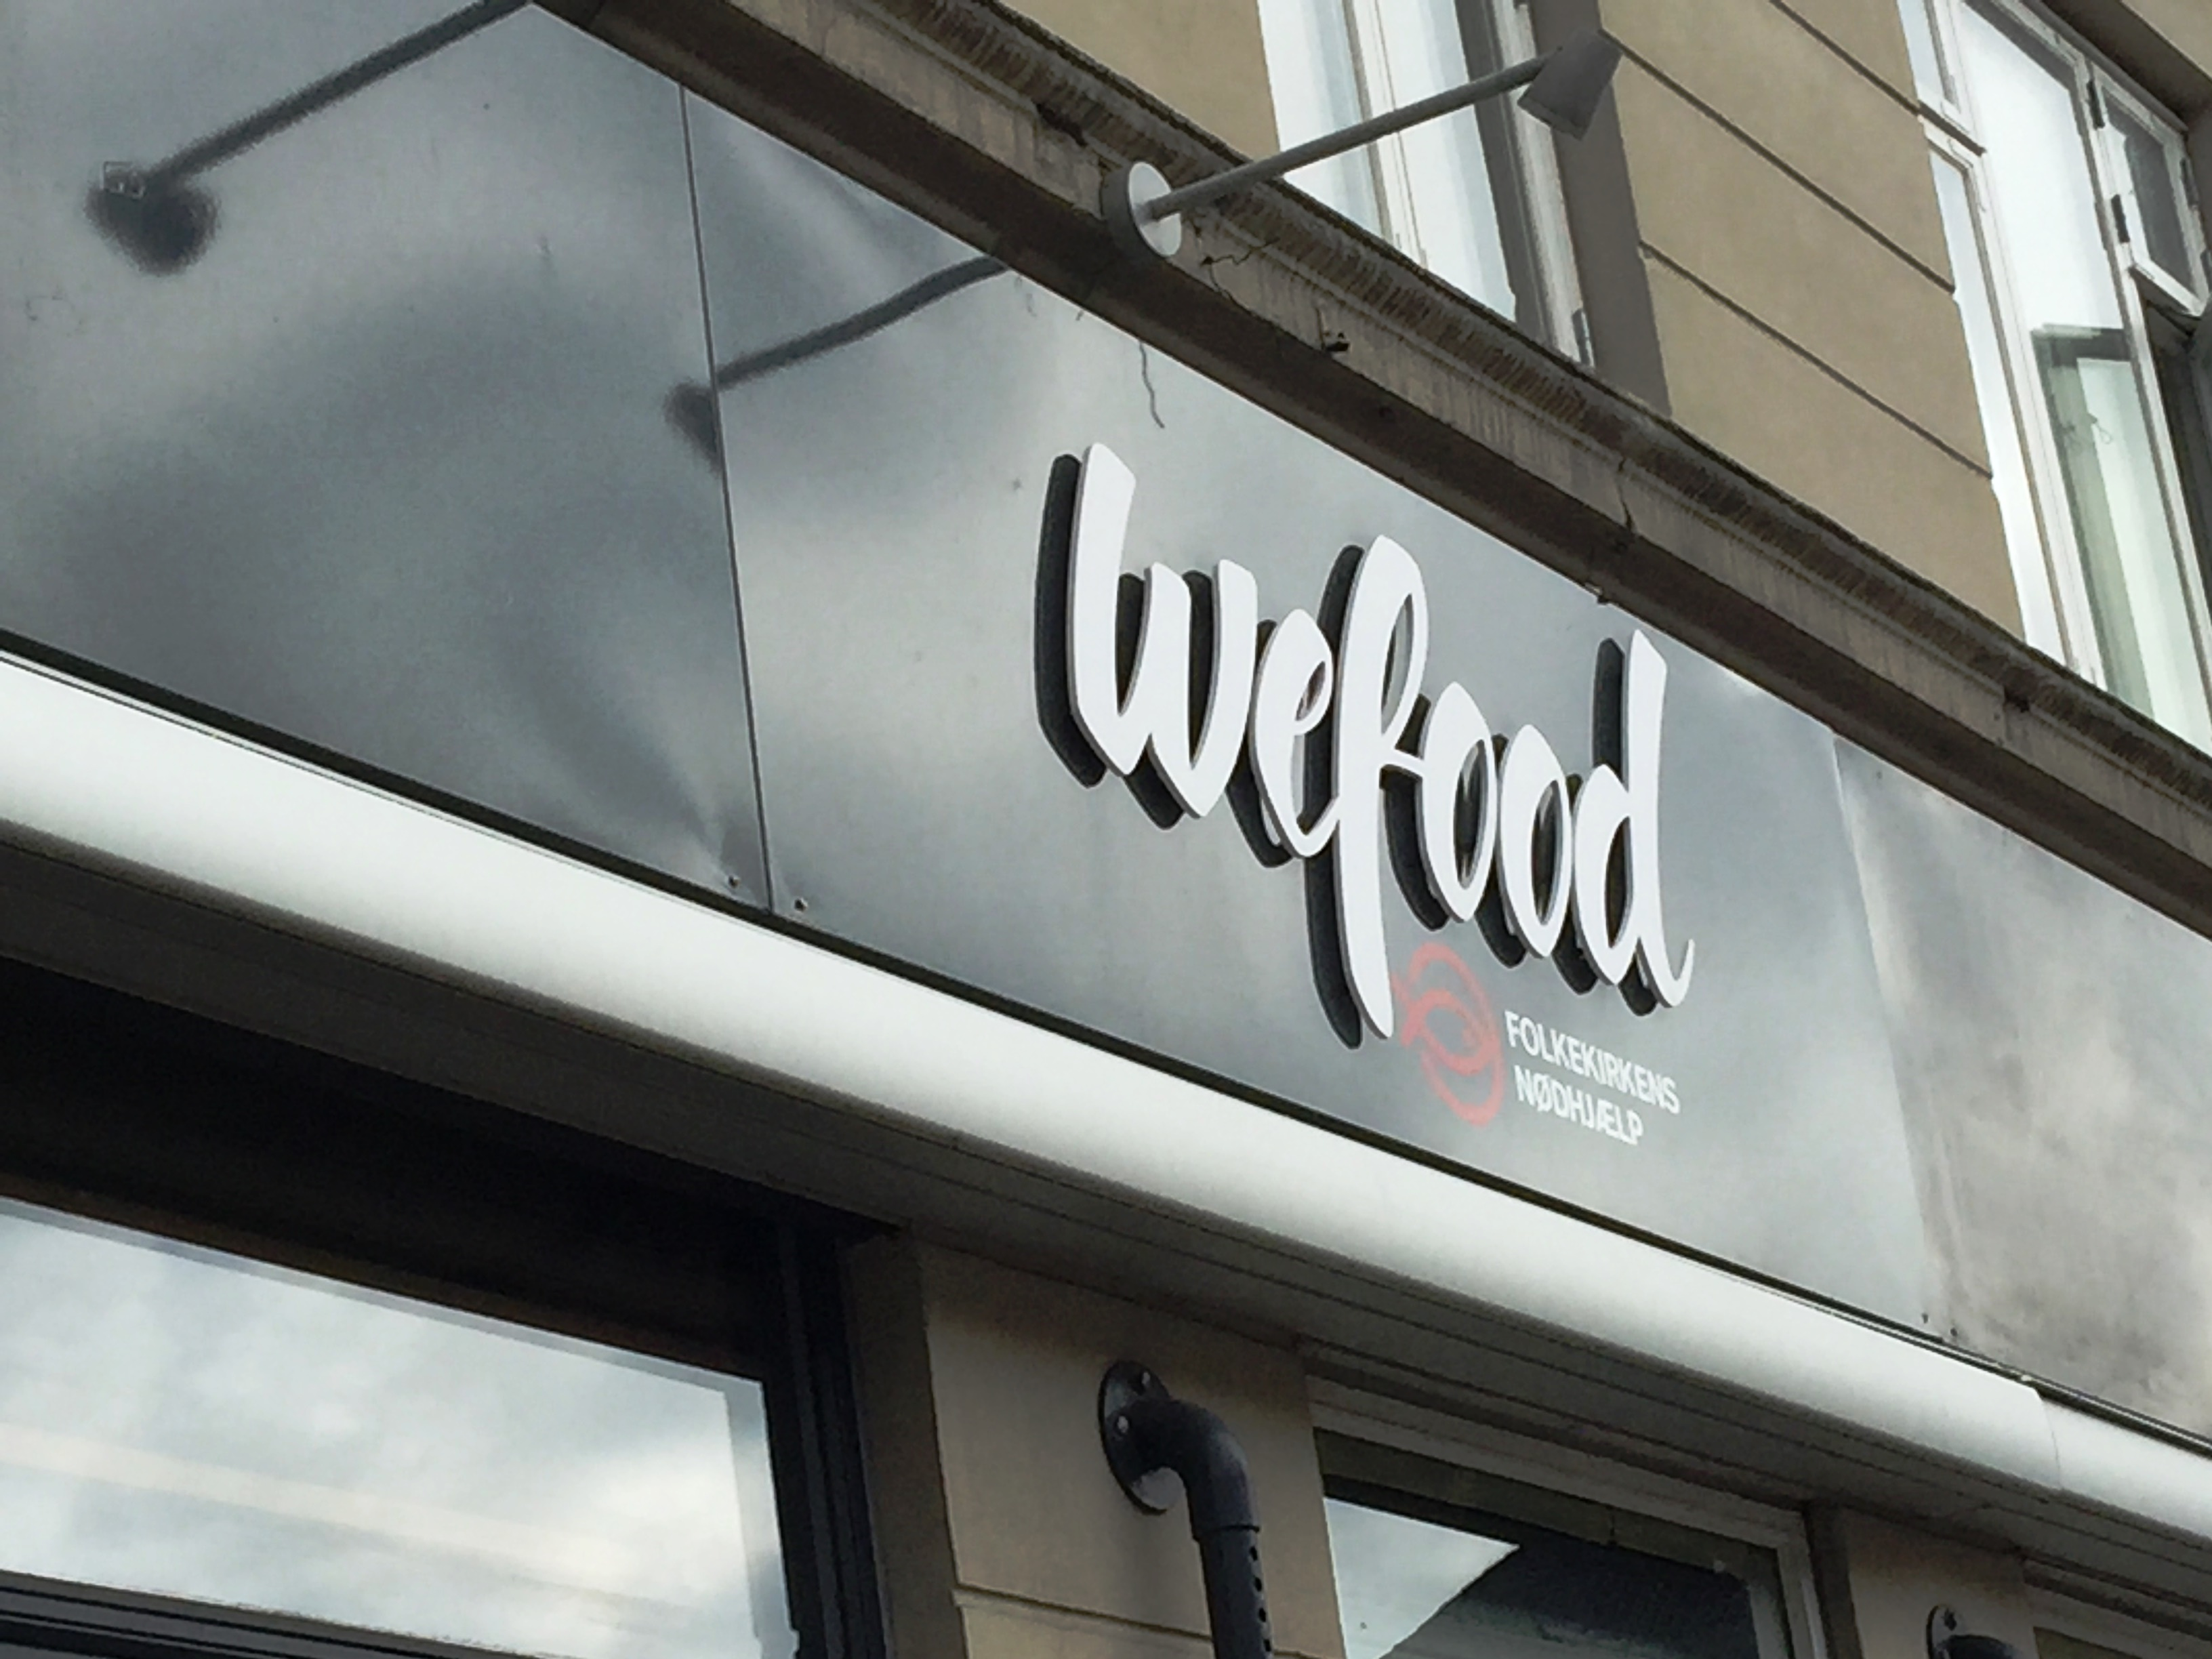 Where the next Wefood?